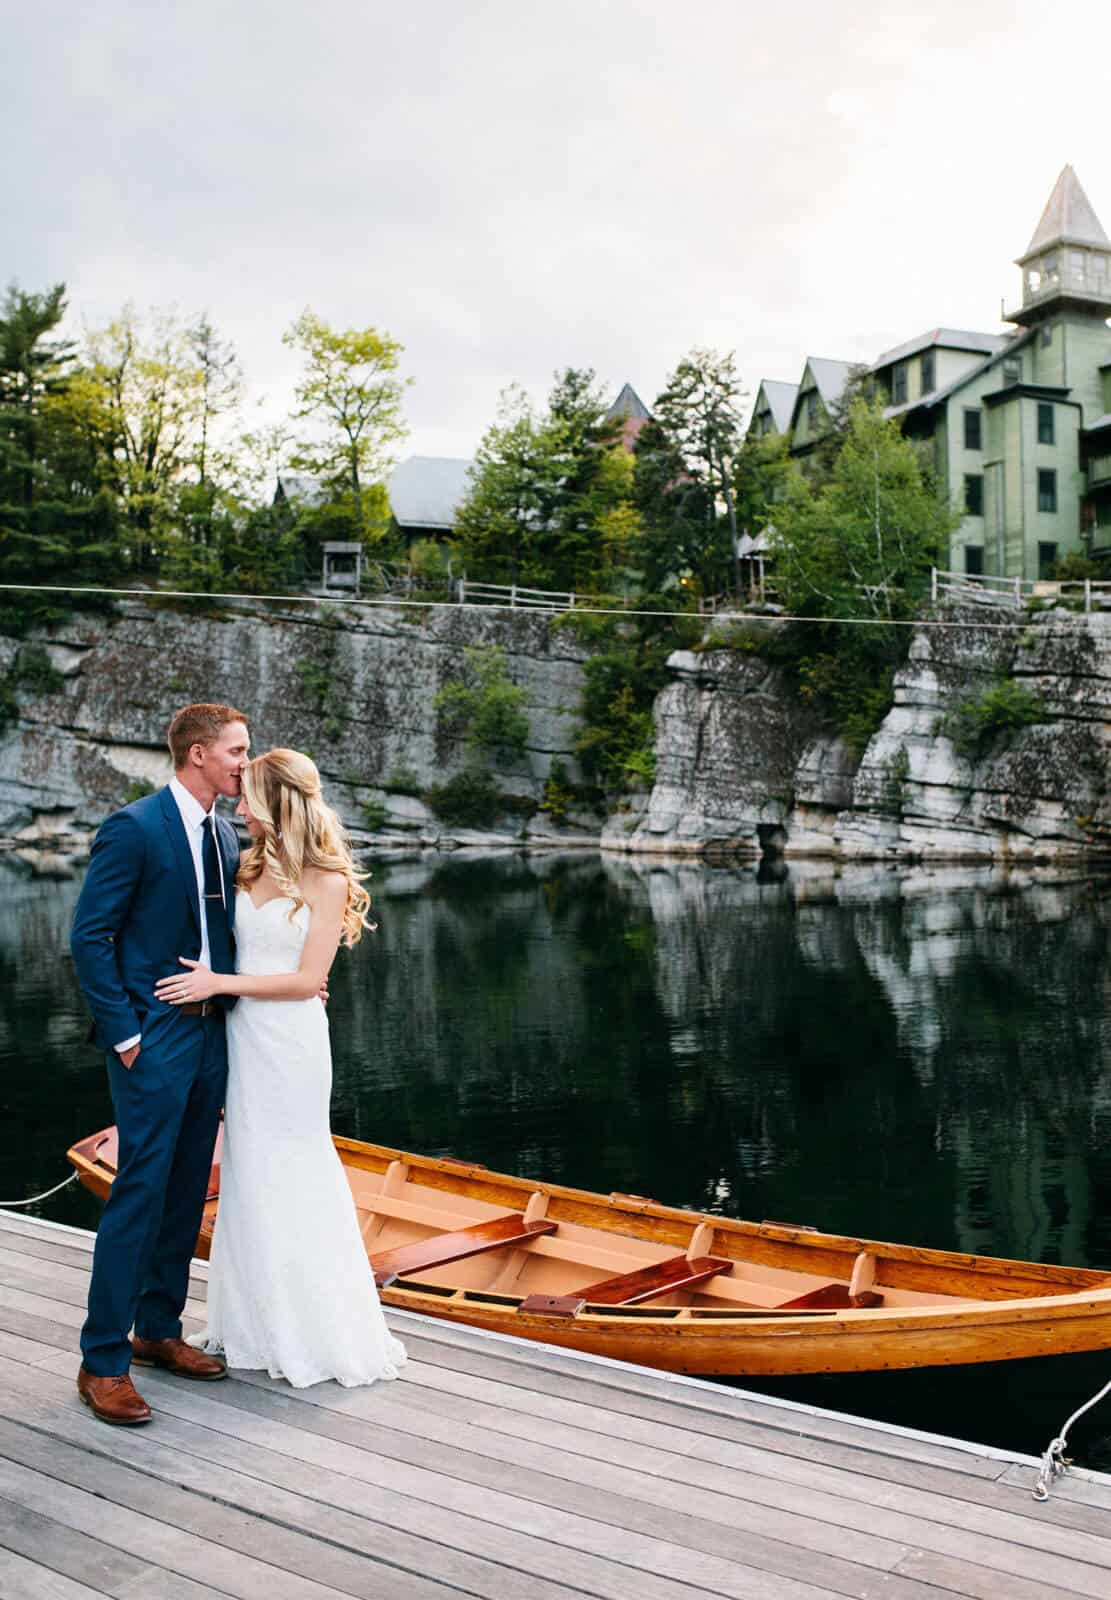 Lakeside Wedding photos